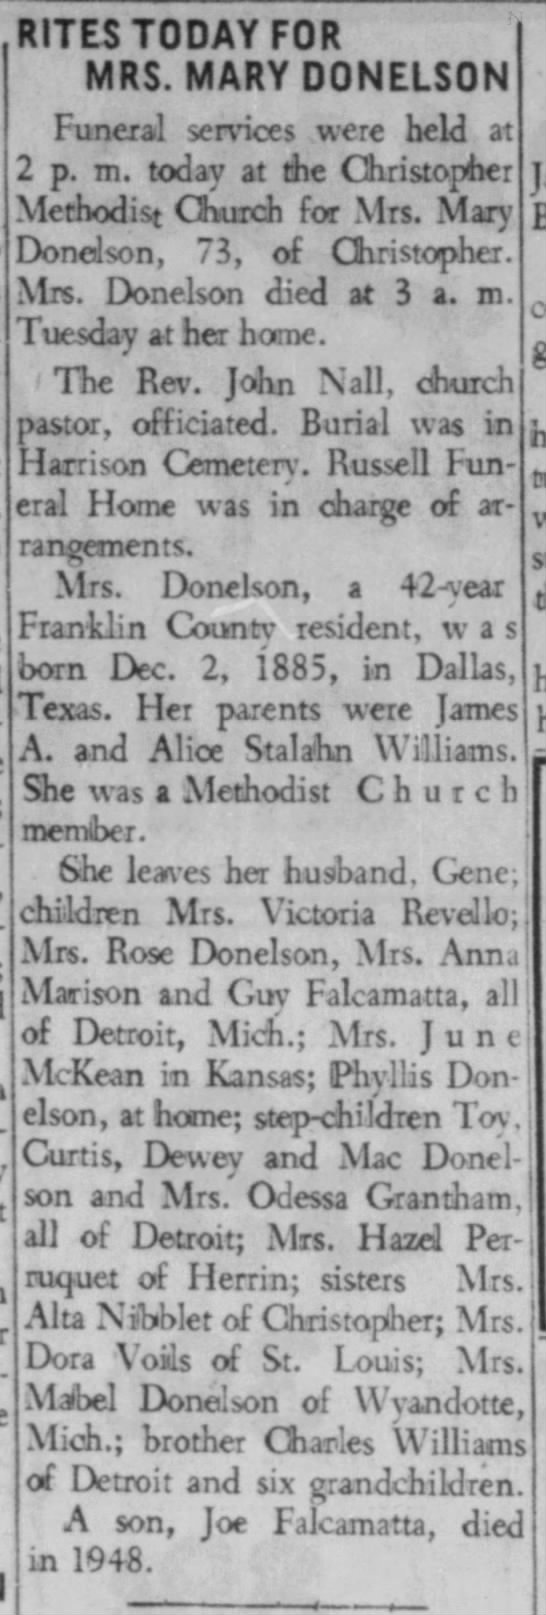 Mary Donelson 1959 obit - RITES TODAY FOR MRS. MARY DONELSON Funeral...